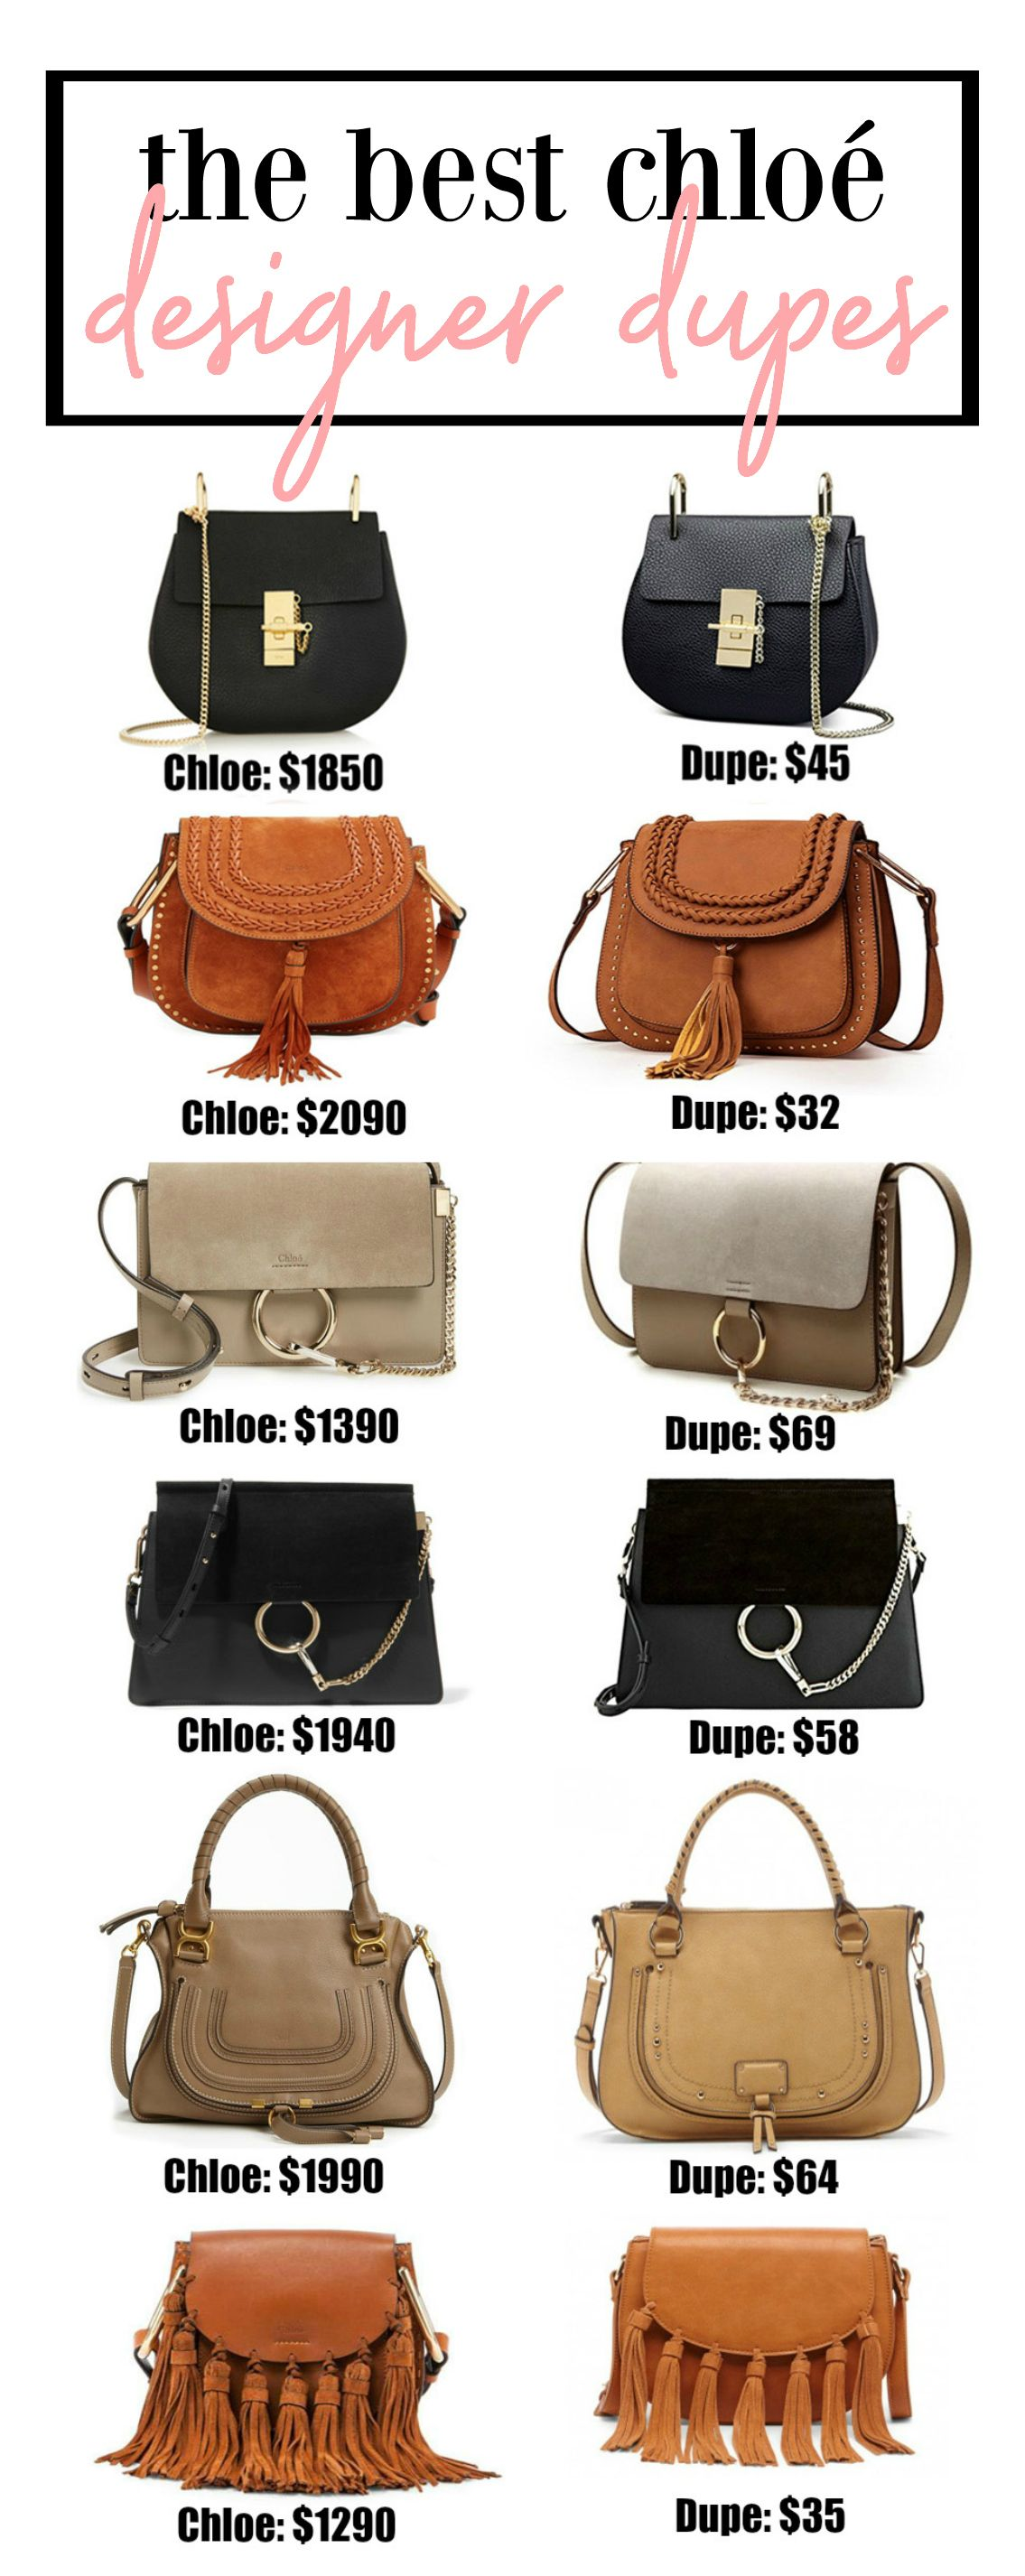 8bbb57f51a THE BEST CHLOE DUPES ON THE MARKET!!! Most under  50! Fashion blogger